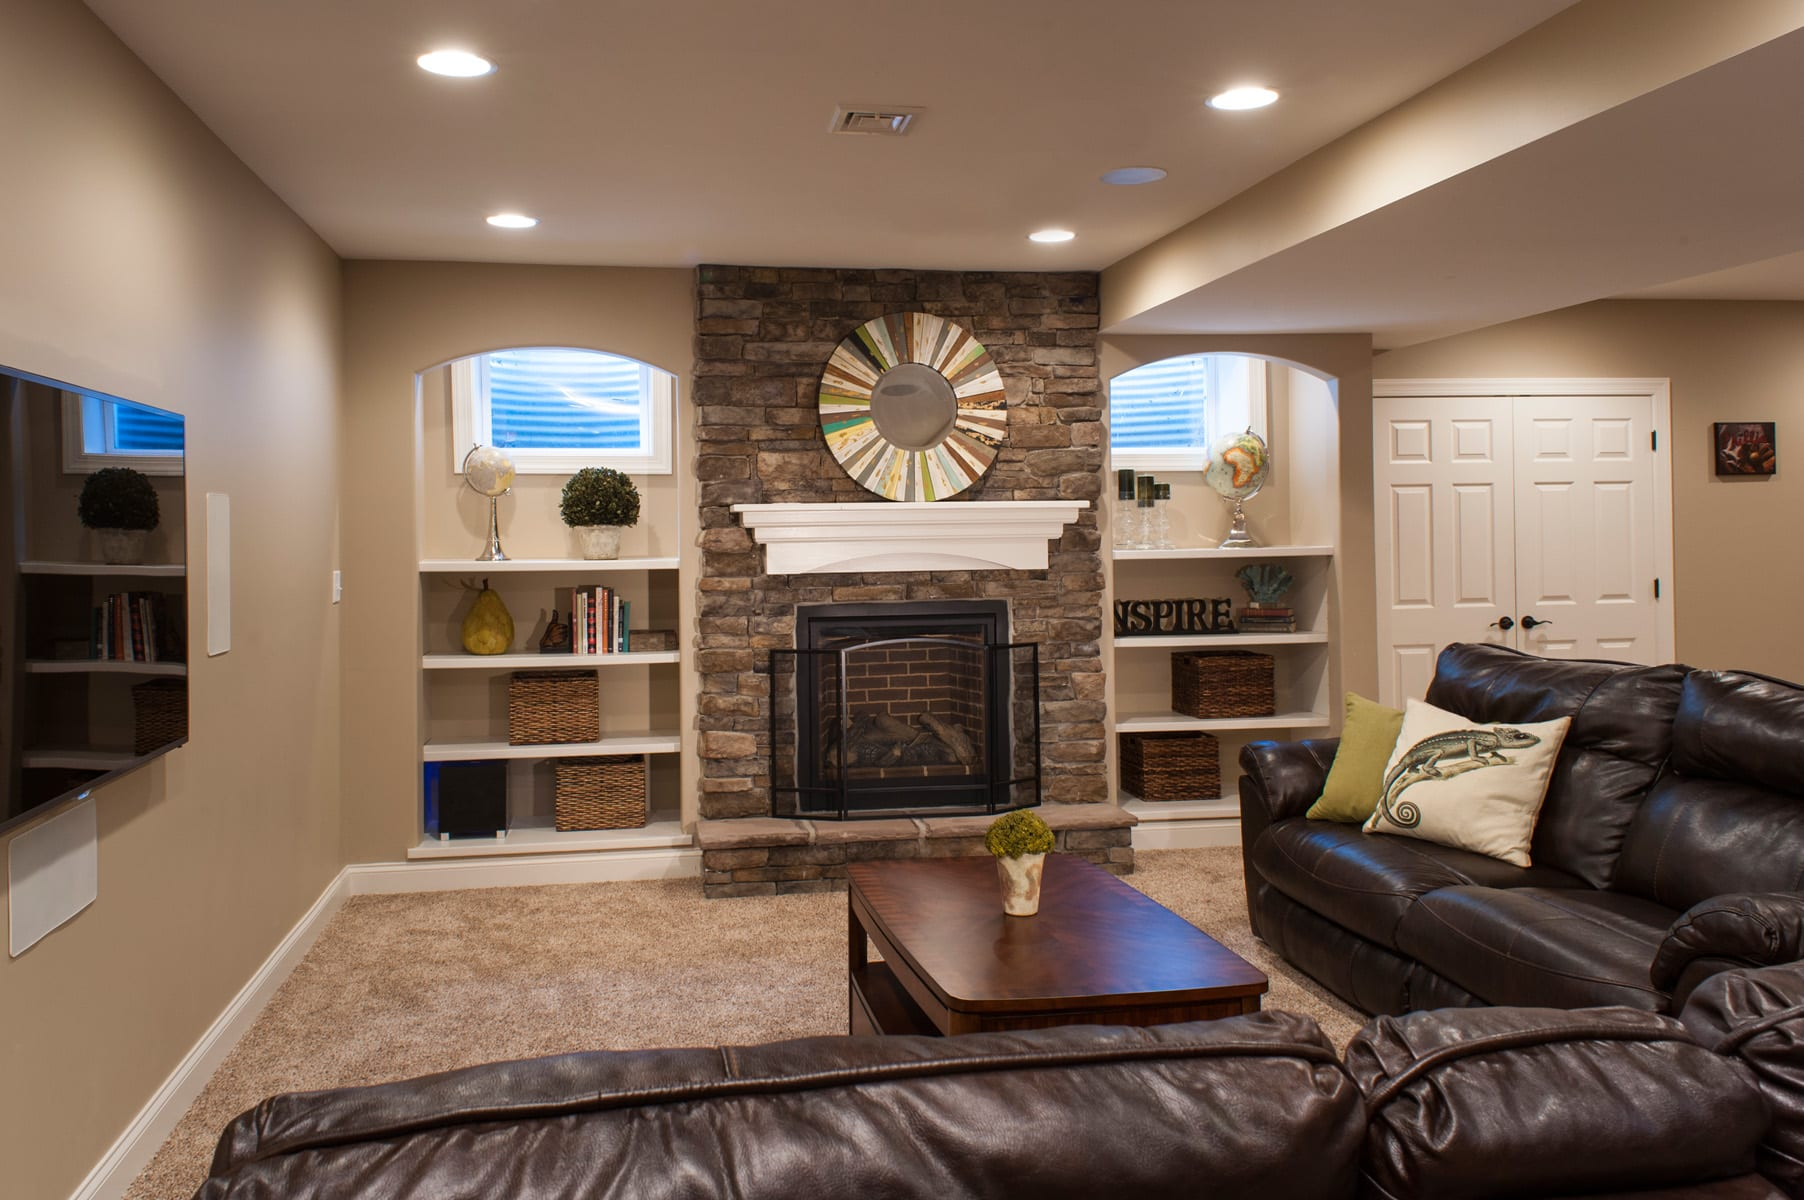 Basement remodeling photo gallery by foxbuilt inc Basement architect